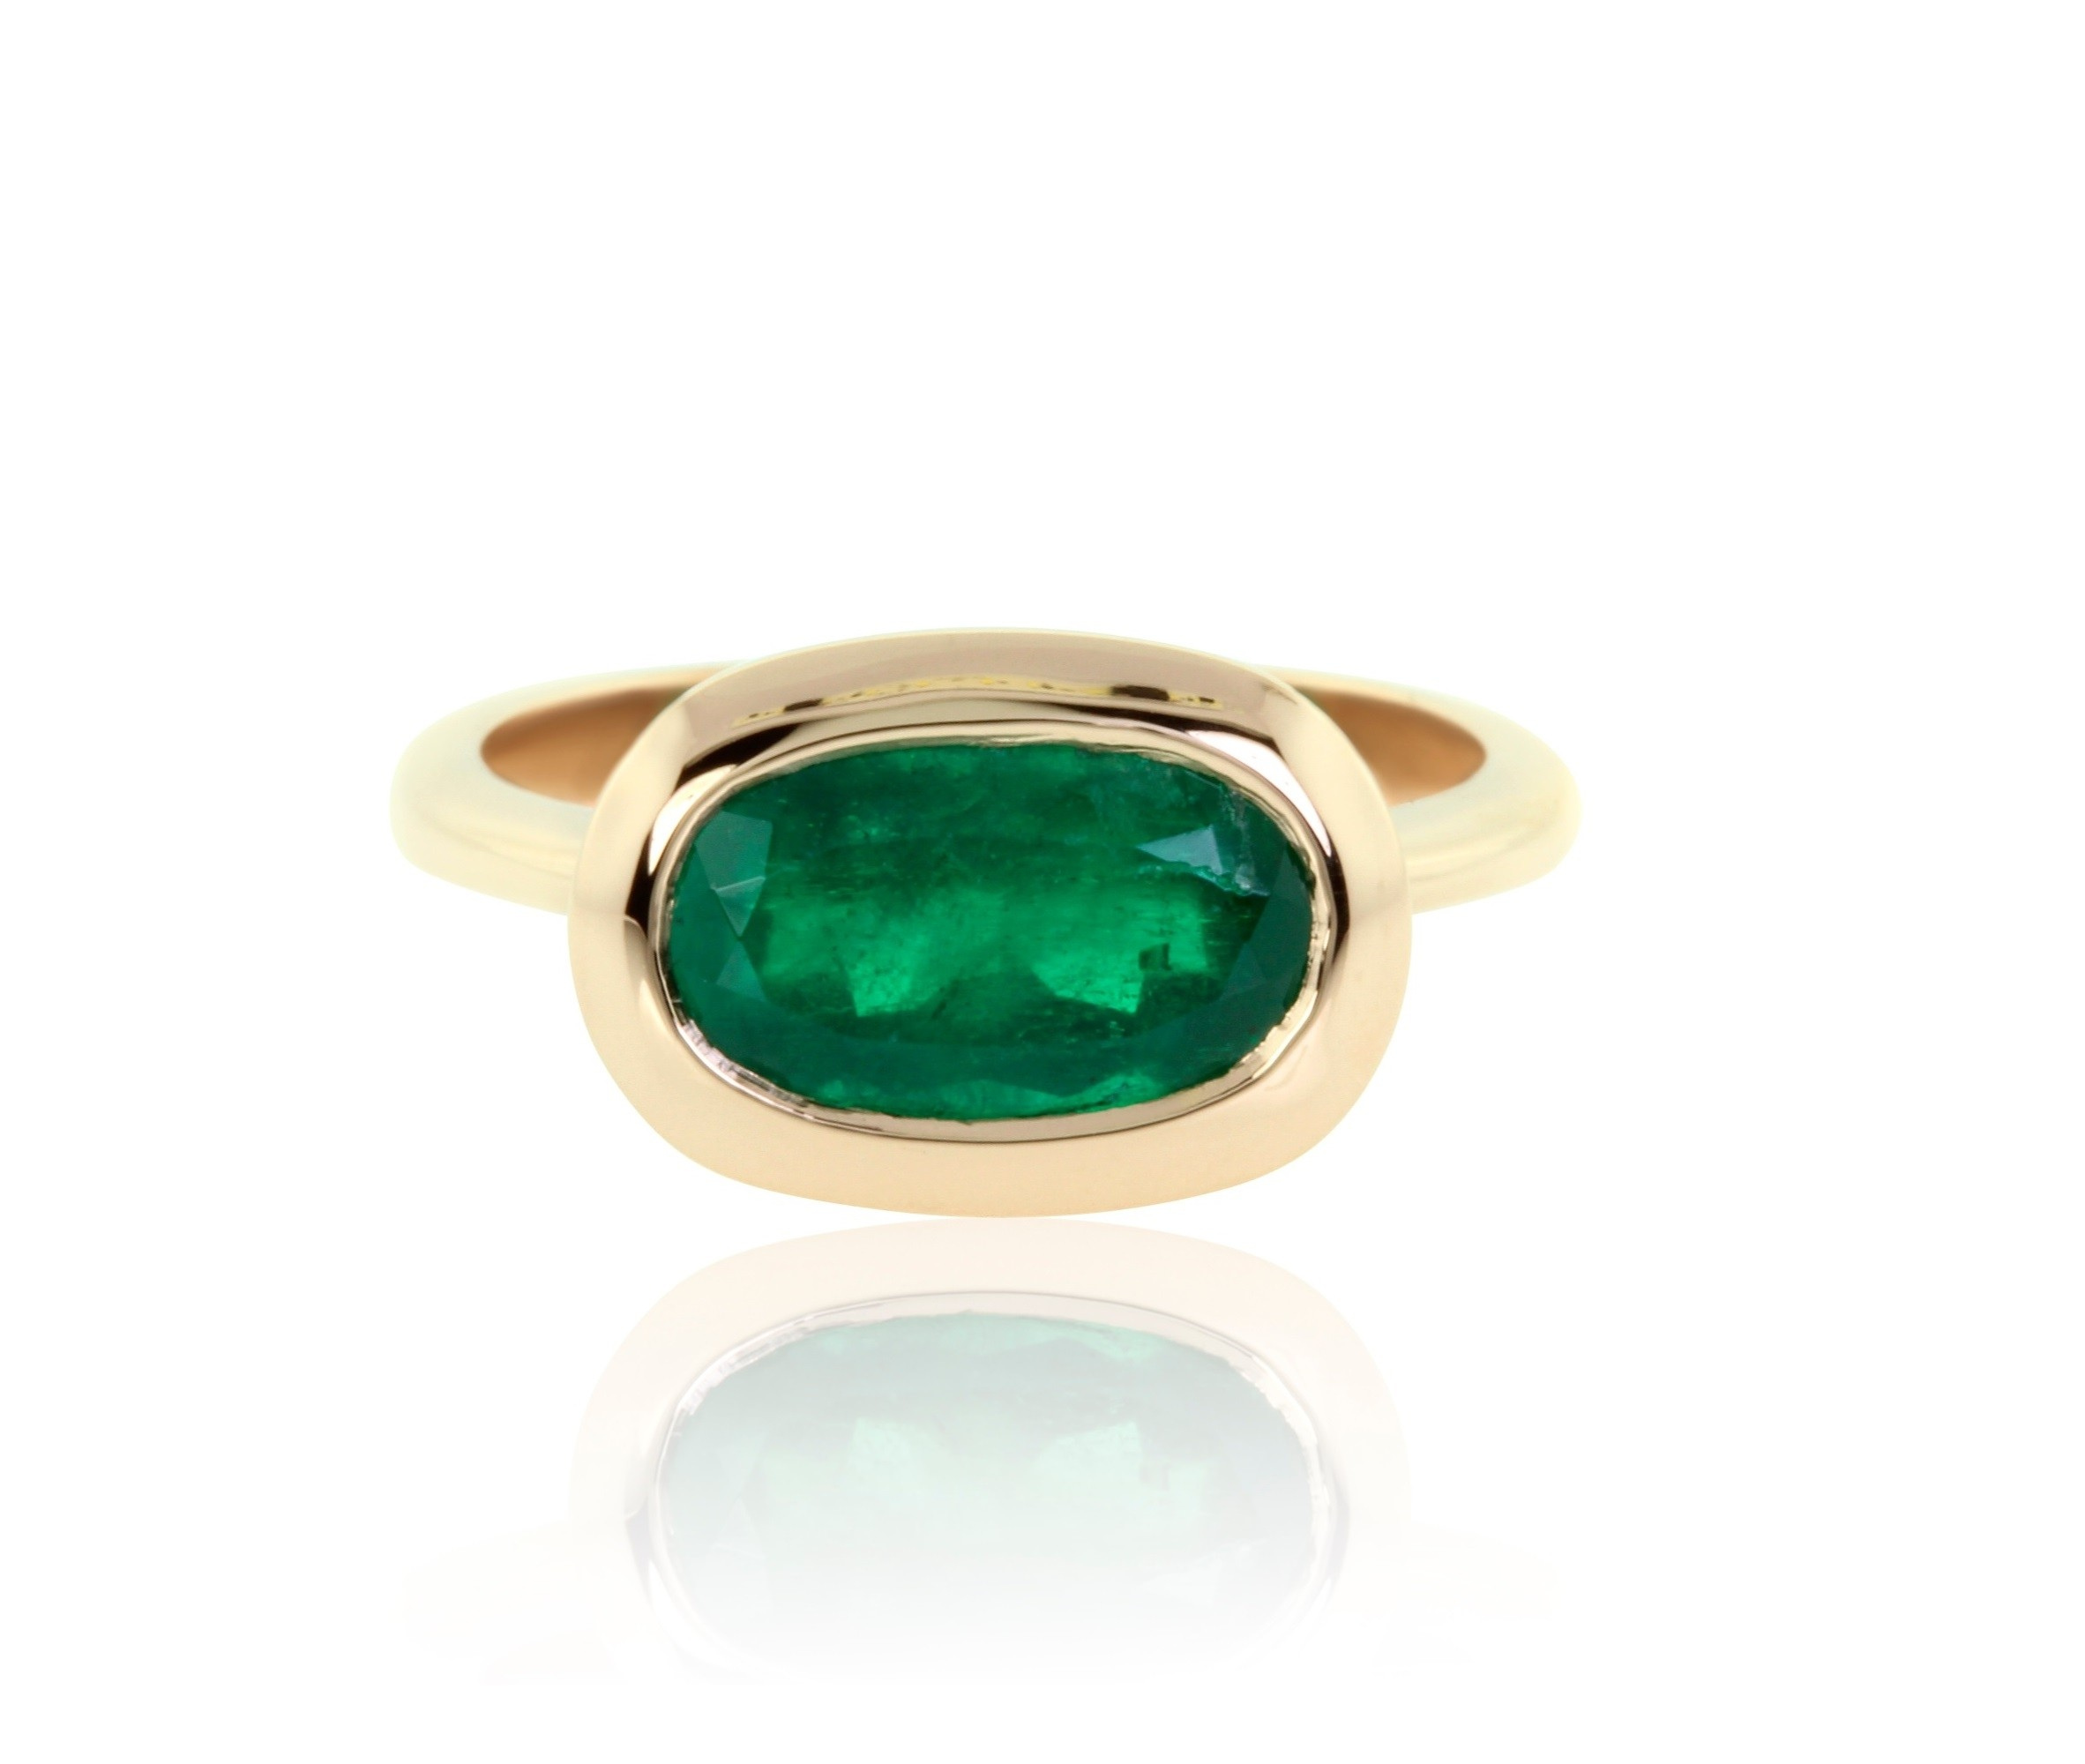 2.19 Carat Natural Colombian Emerald Ring in 18K Pink Gold